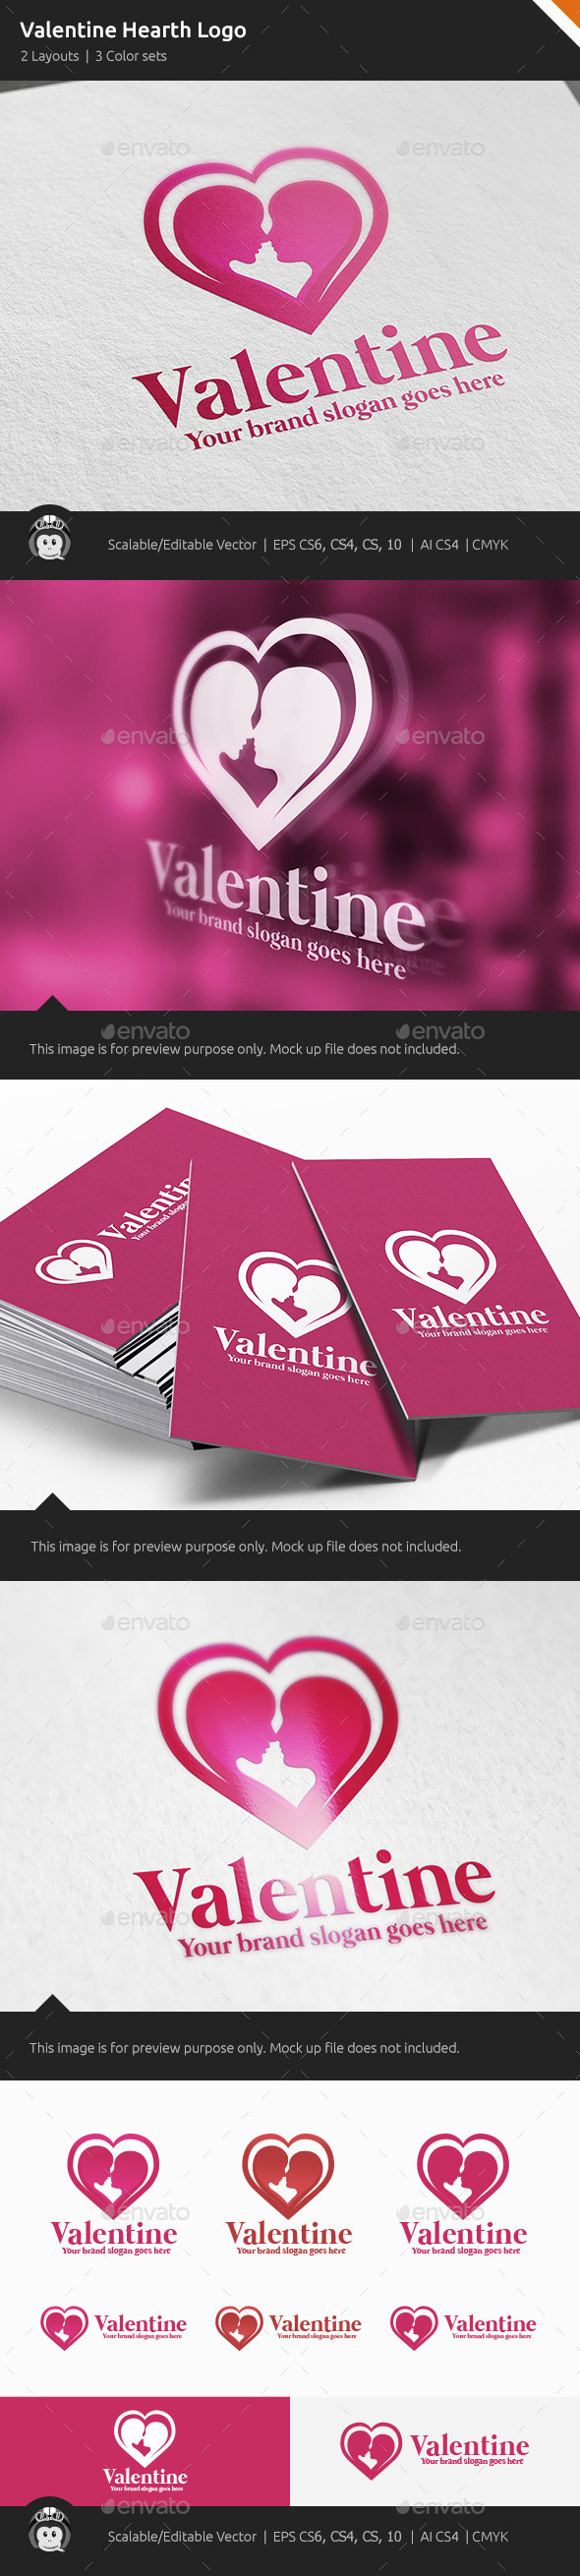 GraphicRiver Valentine Hearth Logo 10407573